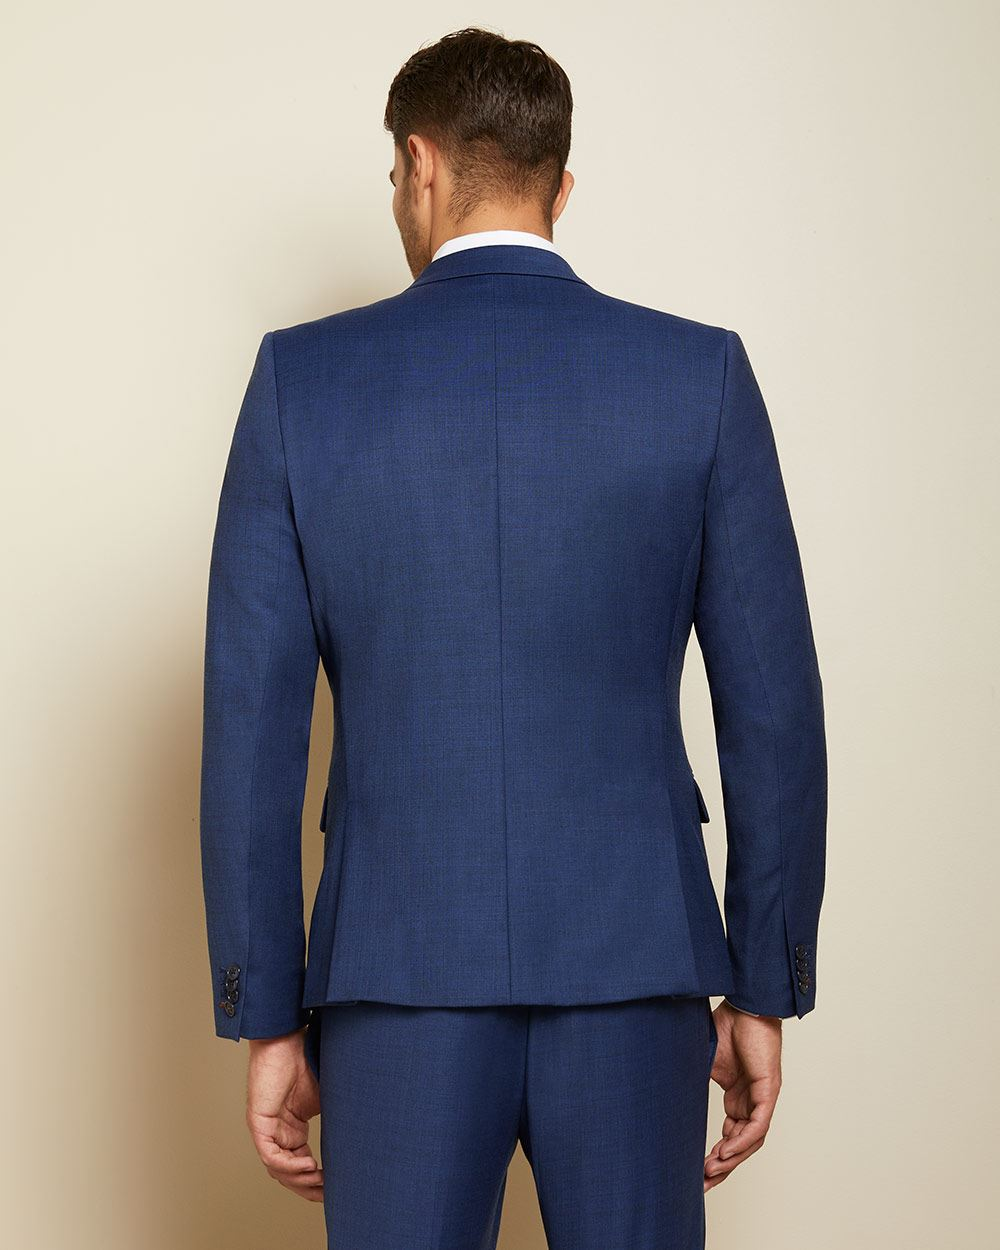 Essential Tailored Fit blue wool-blend suit Blazer